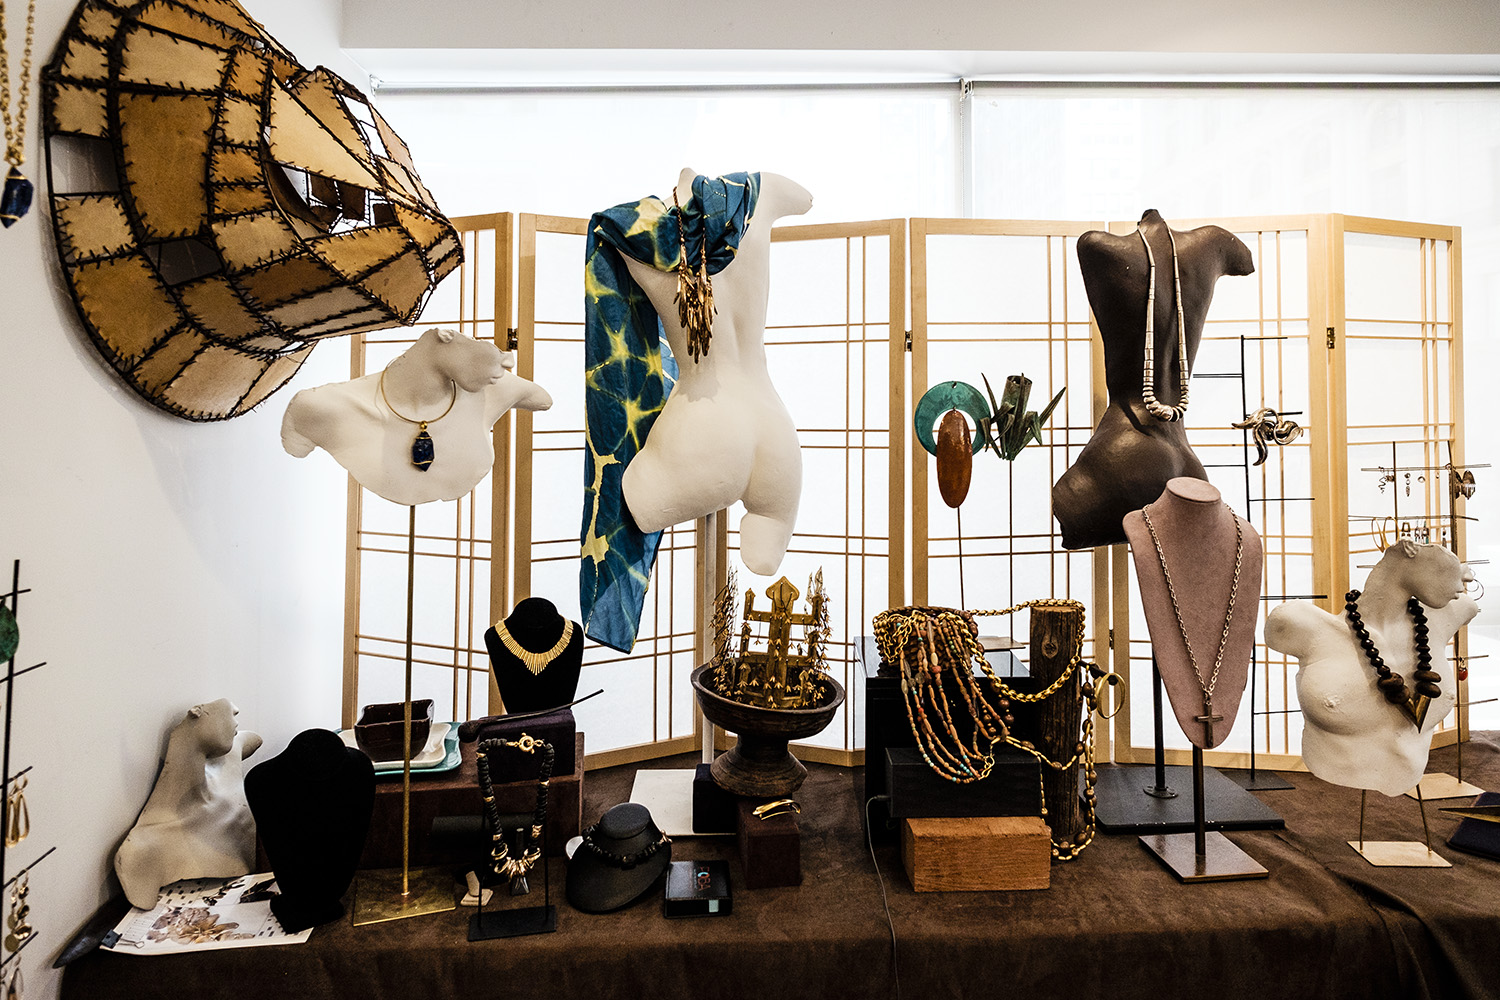 Jewelry displayed at the Robert Lee Morris studio at 390 Fifth Avenue, New York, NY. Chris Sorensen/For New York Observer